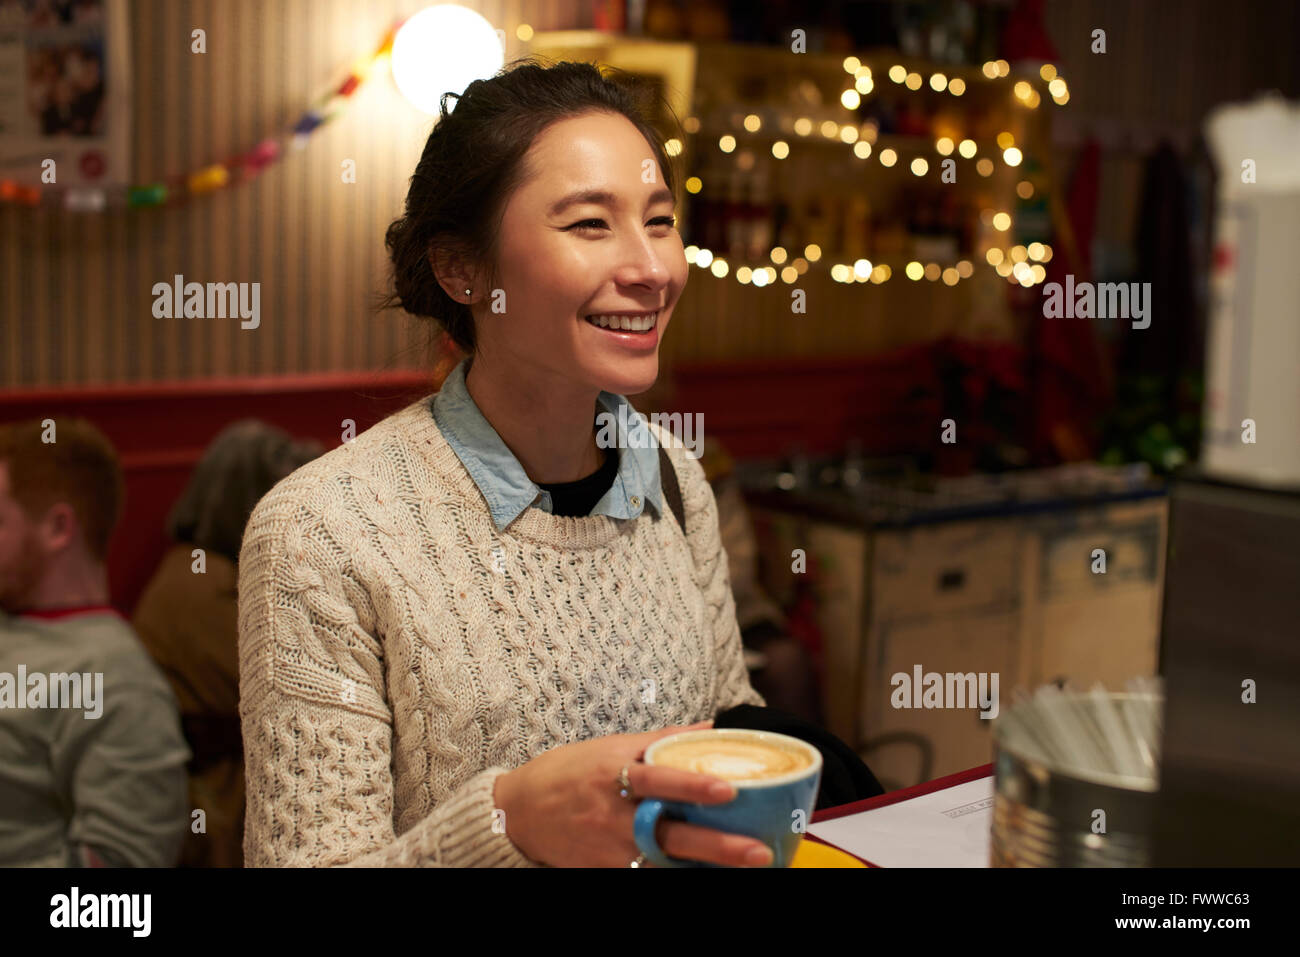 Evening Shot Of Young Woman Relaxing In Coffee Shop - Stock Image